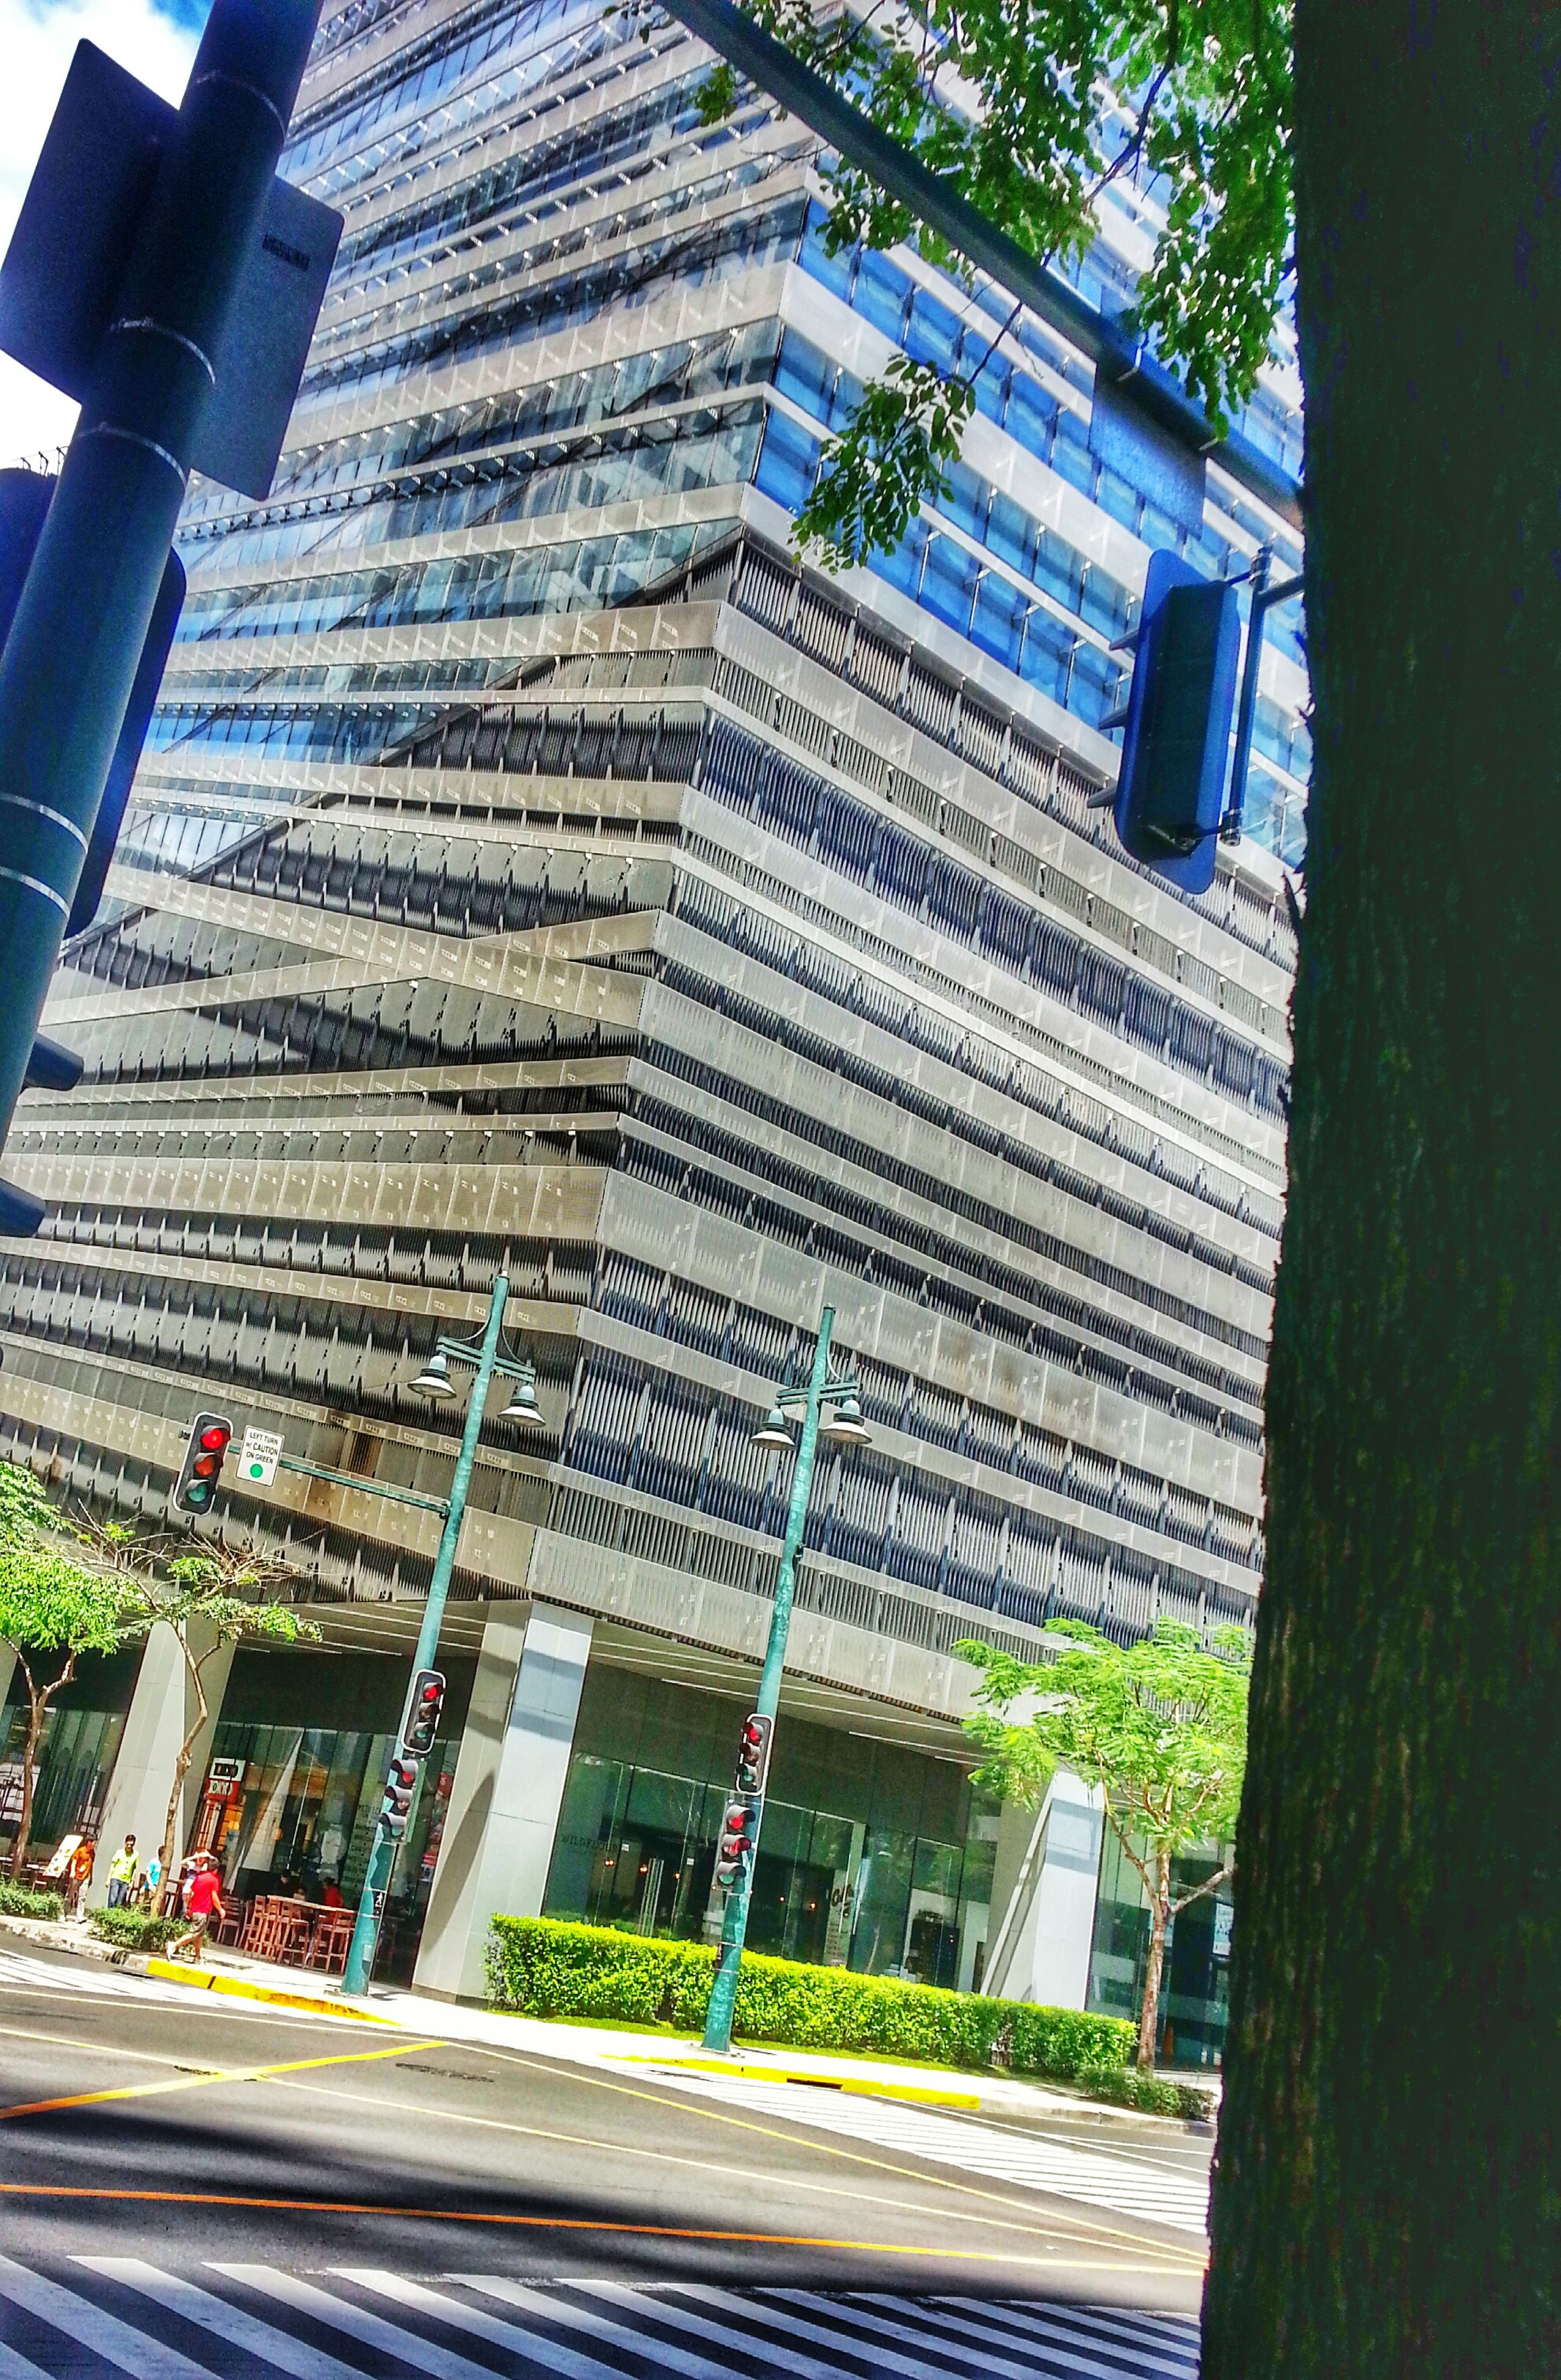 architecture, building exterior, built structure, city, modern, skyscraper, office building, building, tower, tall - high, city life, street, low angle view, incidental people, car, day, transportation, outdoors, residential building, sky